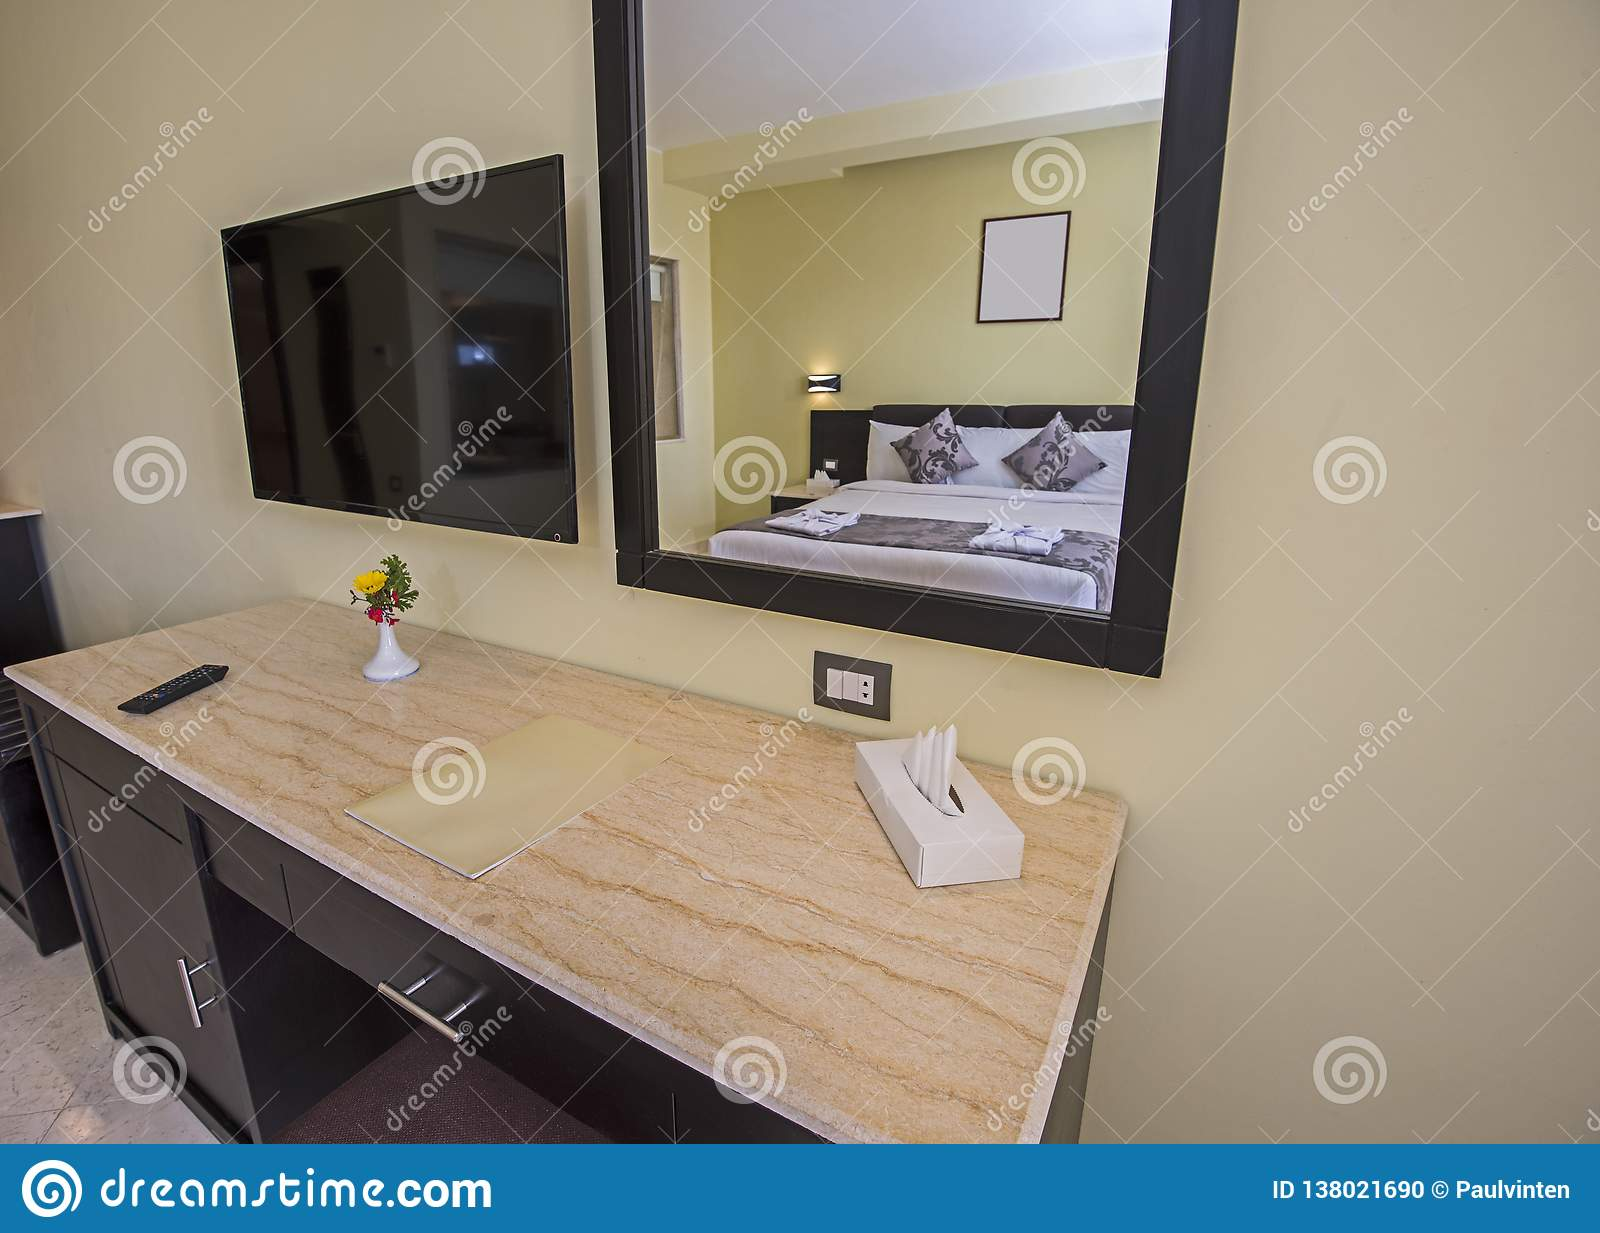 Double bed in a luxury suite of a hotel room